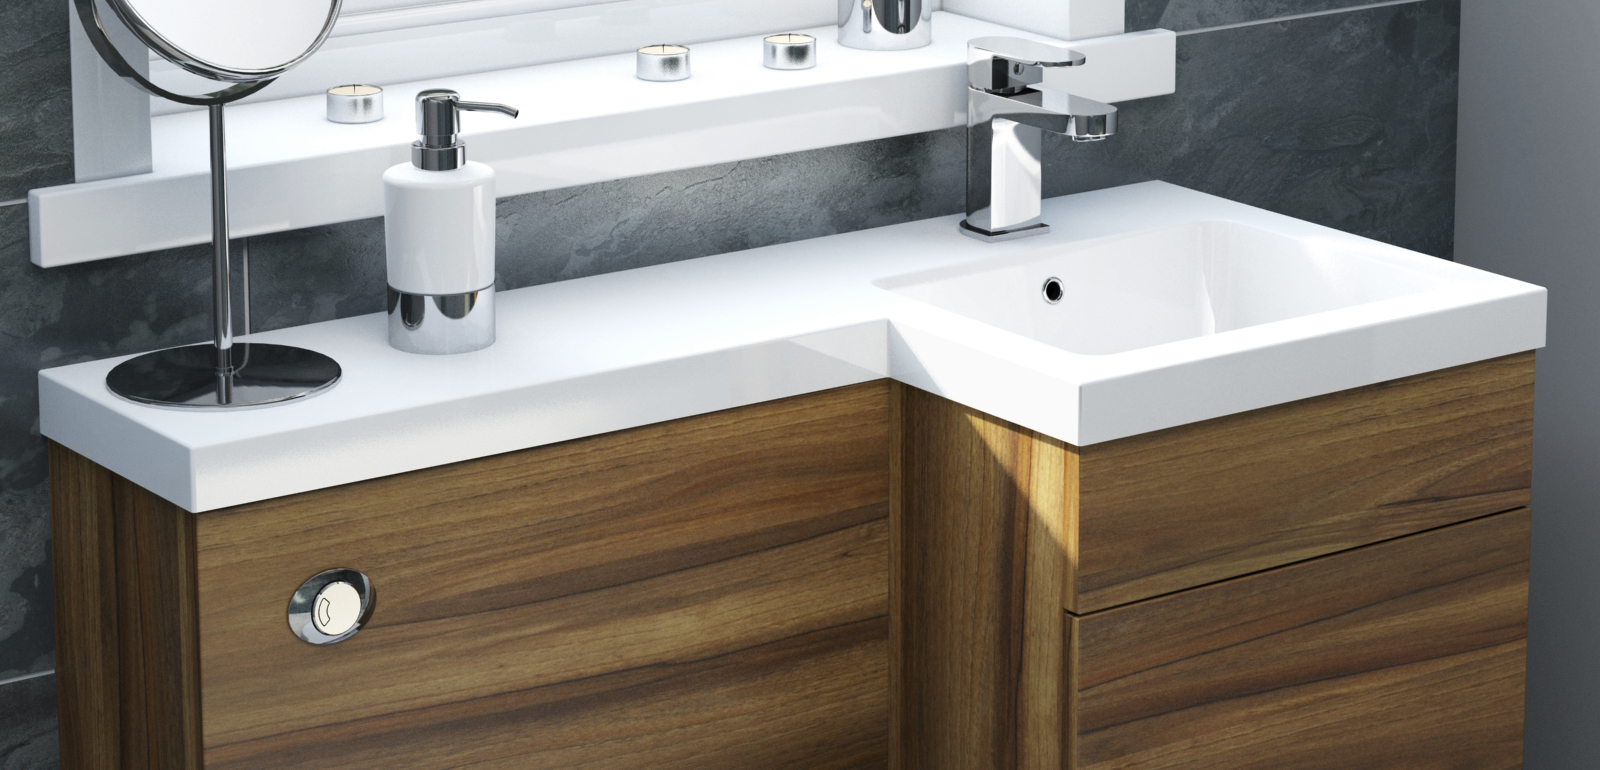 Simple Solutions for Small Bathrooms | PlumbNation.co.uk